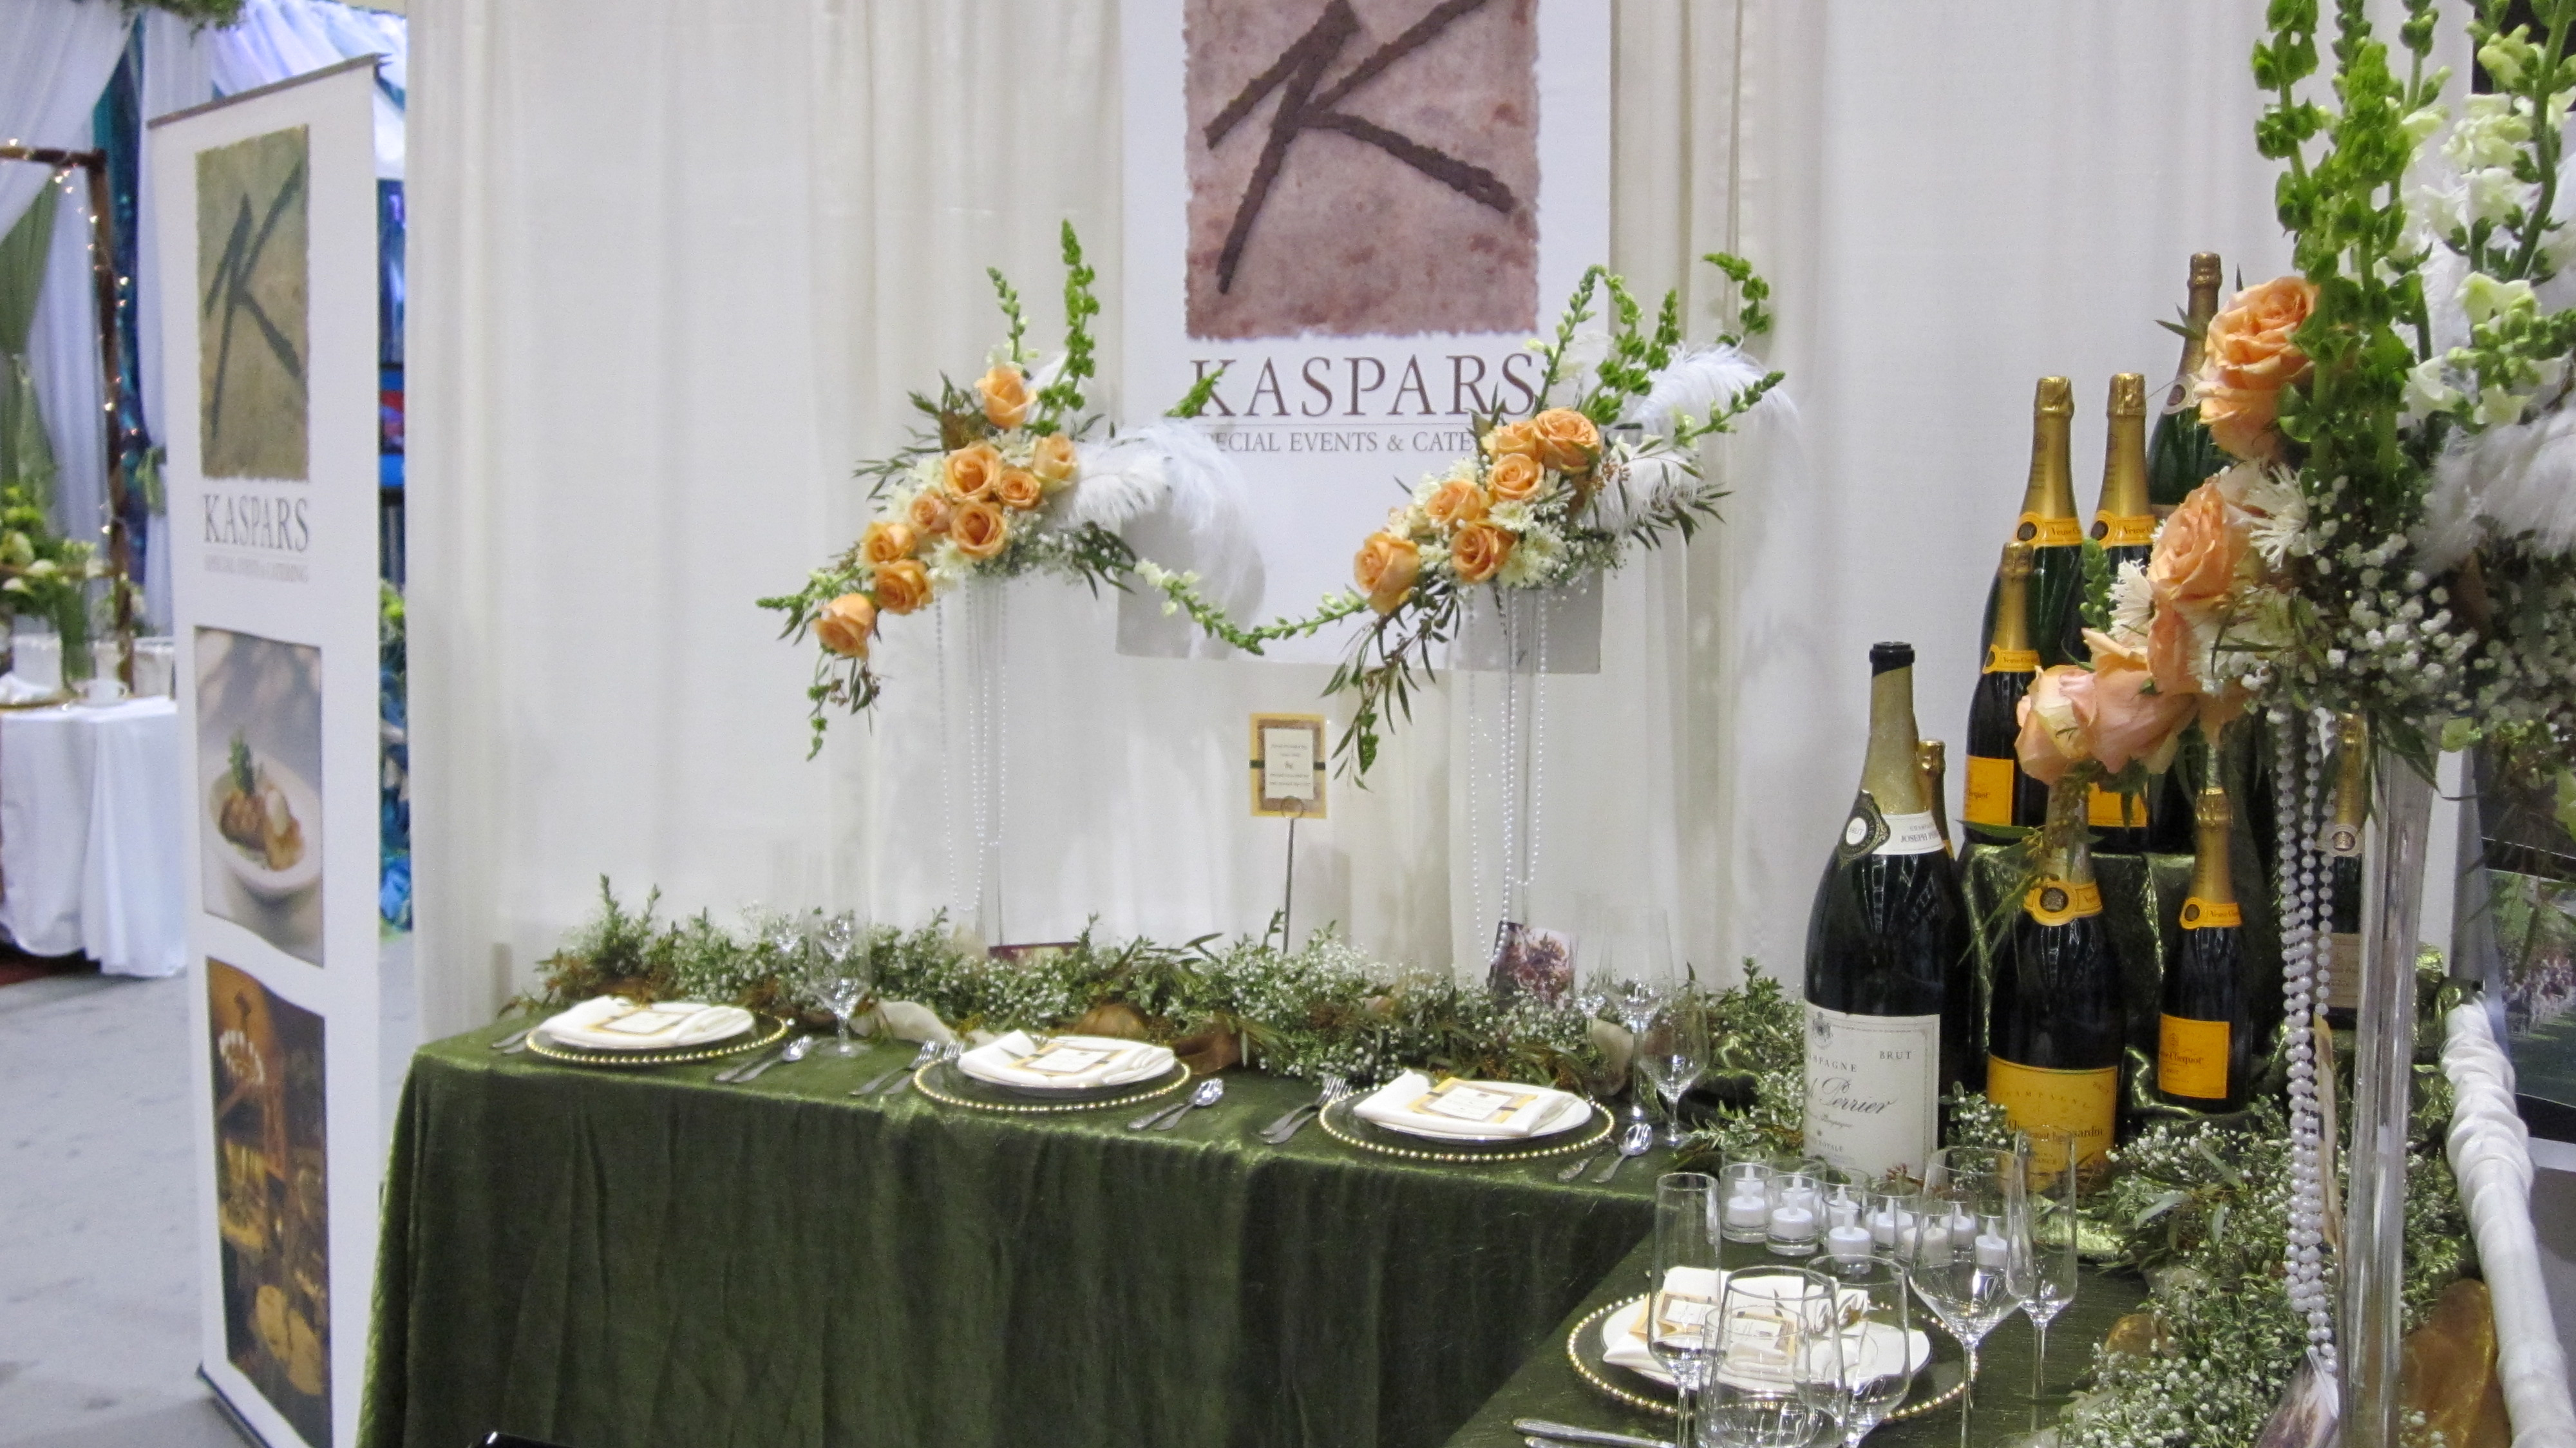 image of wedding show booth